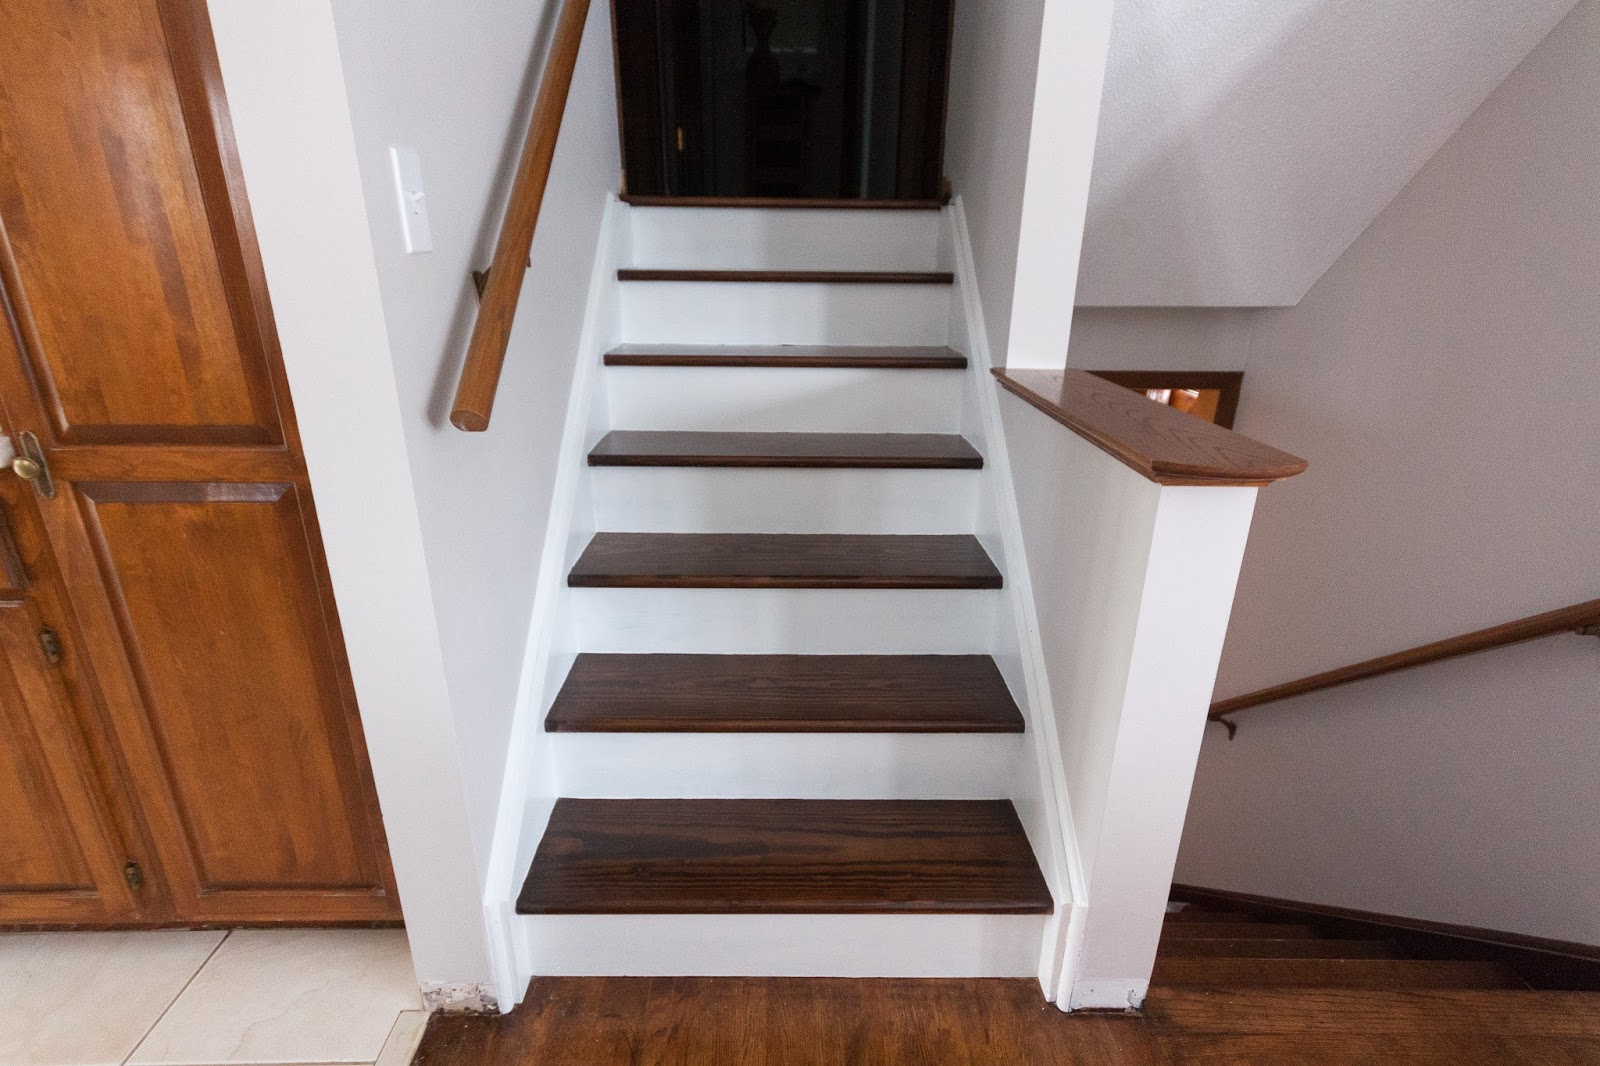 Stained Pine Stairs : used my absolute favorite primer, BIN to prime everything. It looked ...